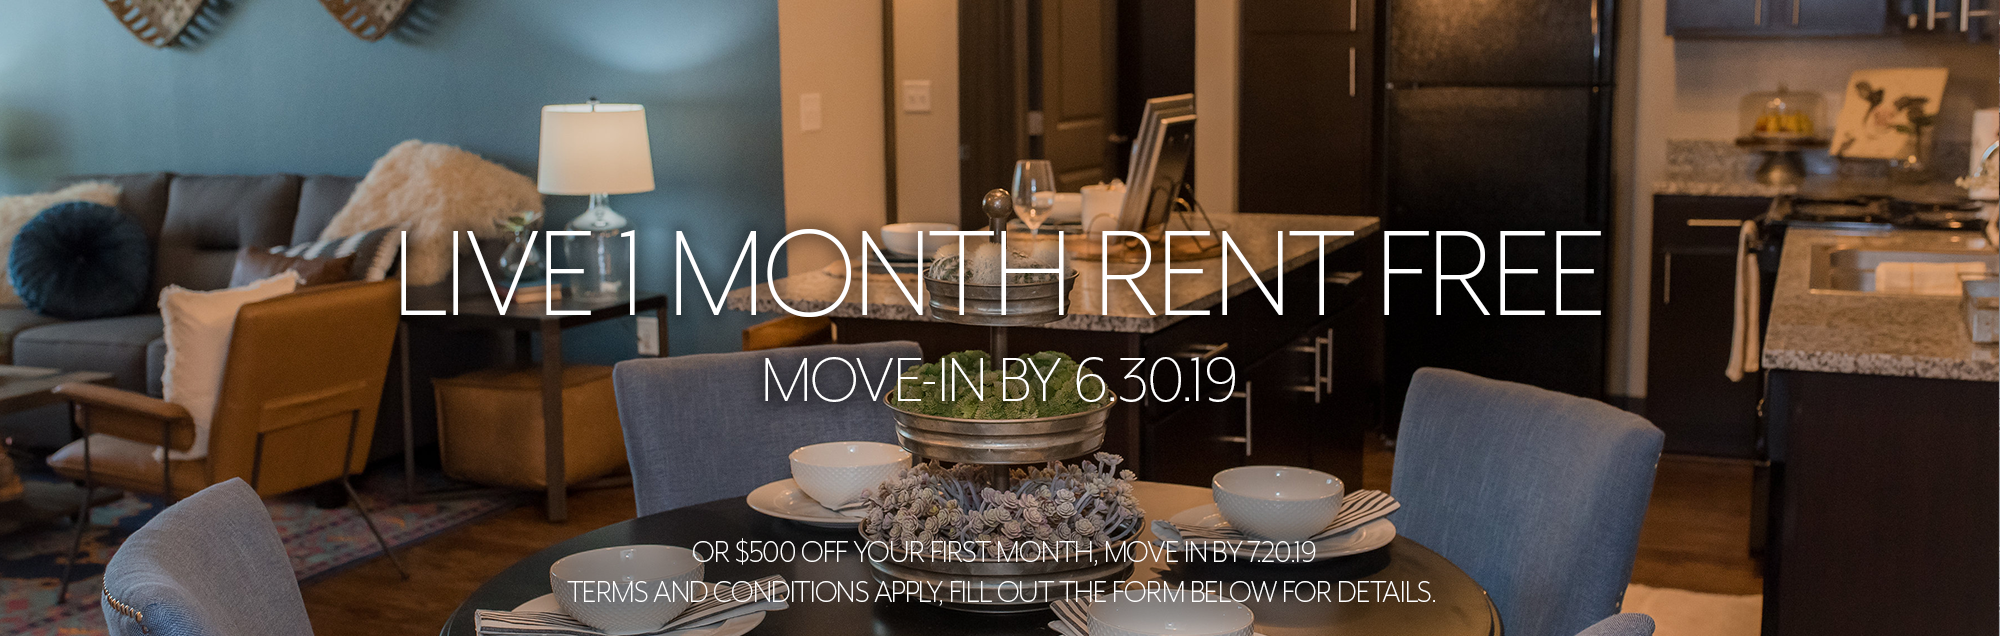 Live One Month Rent Free Special Banner